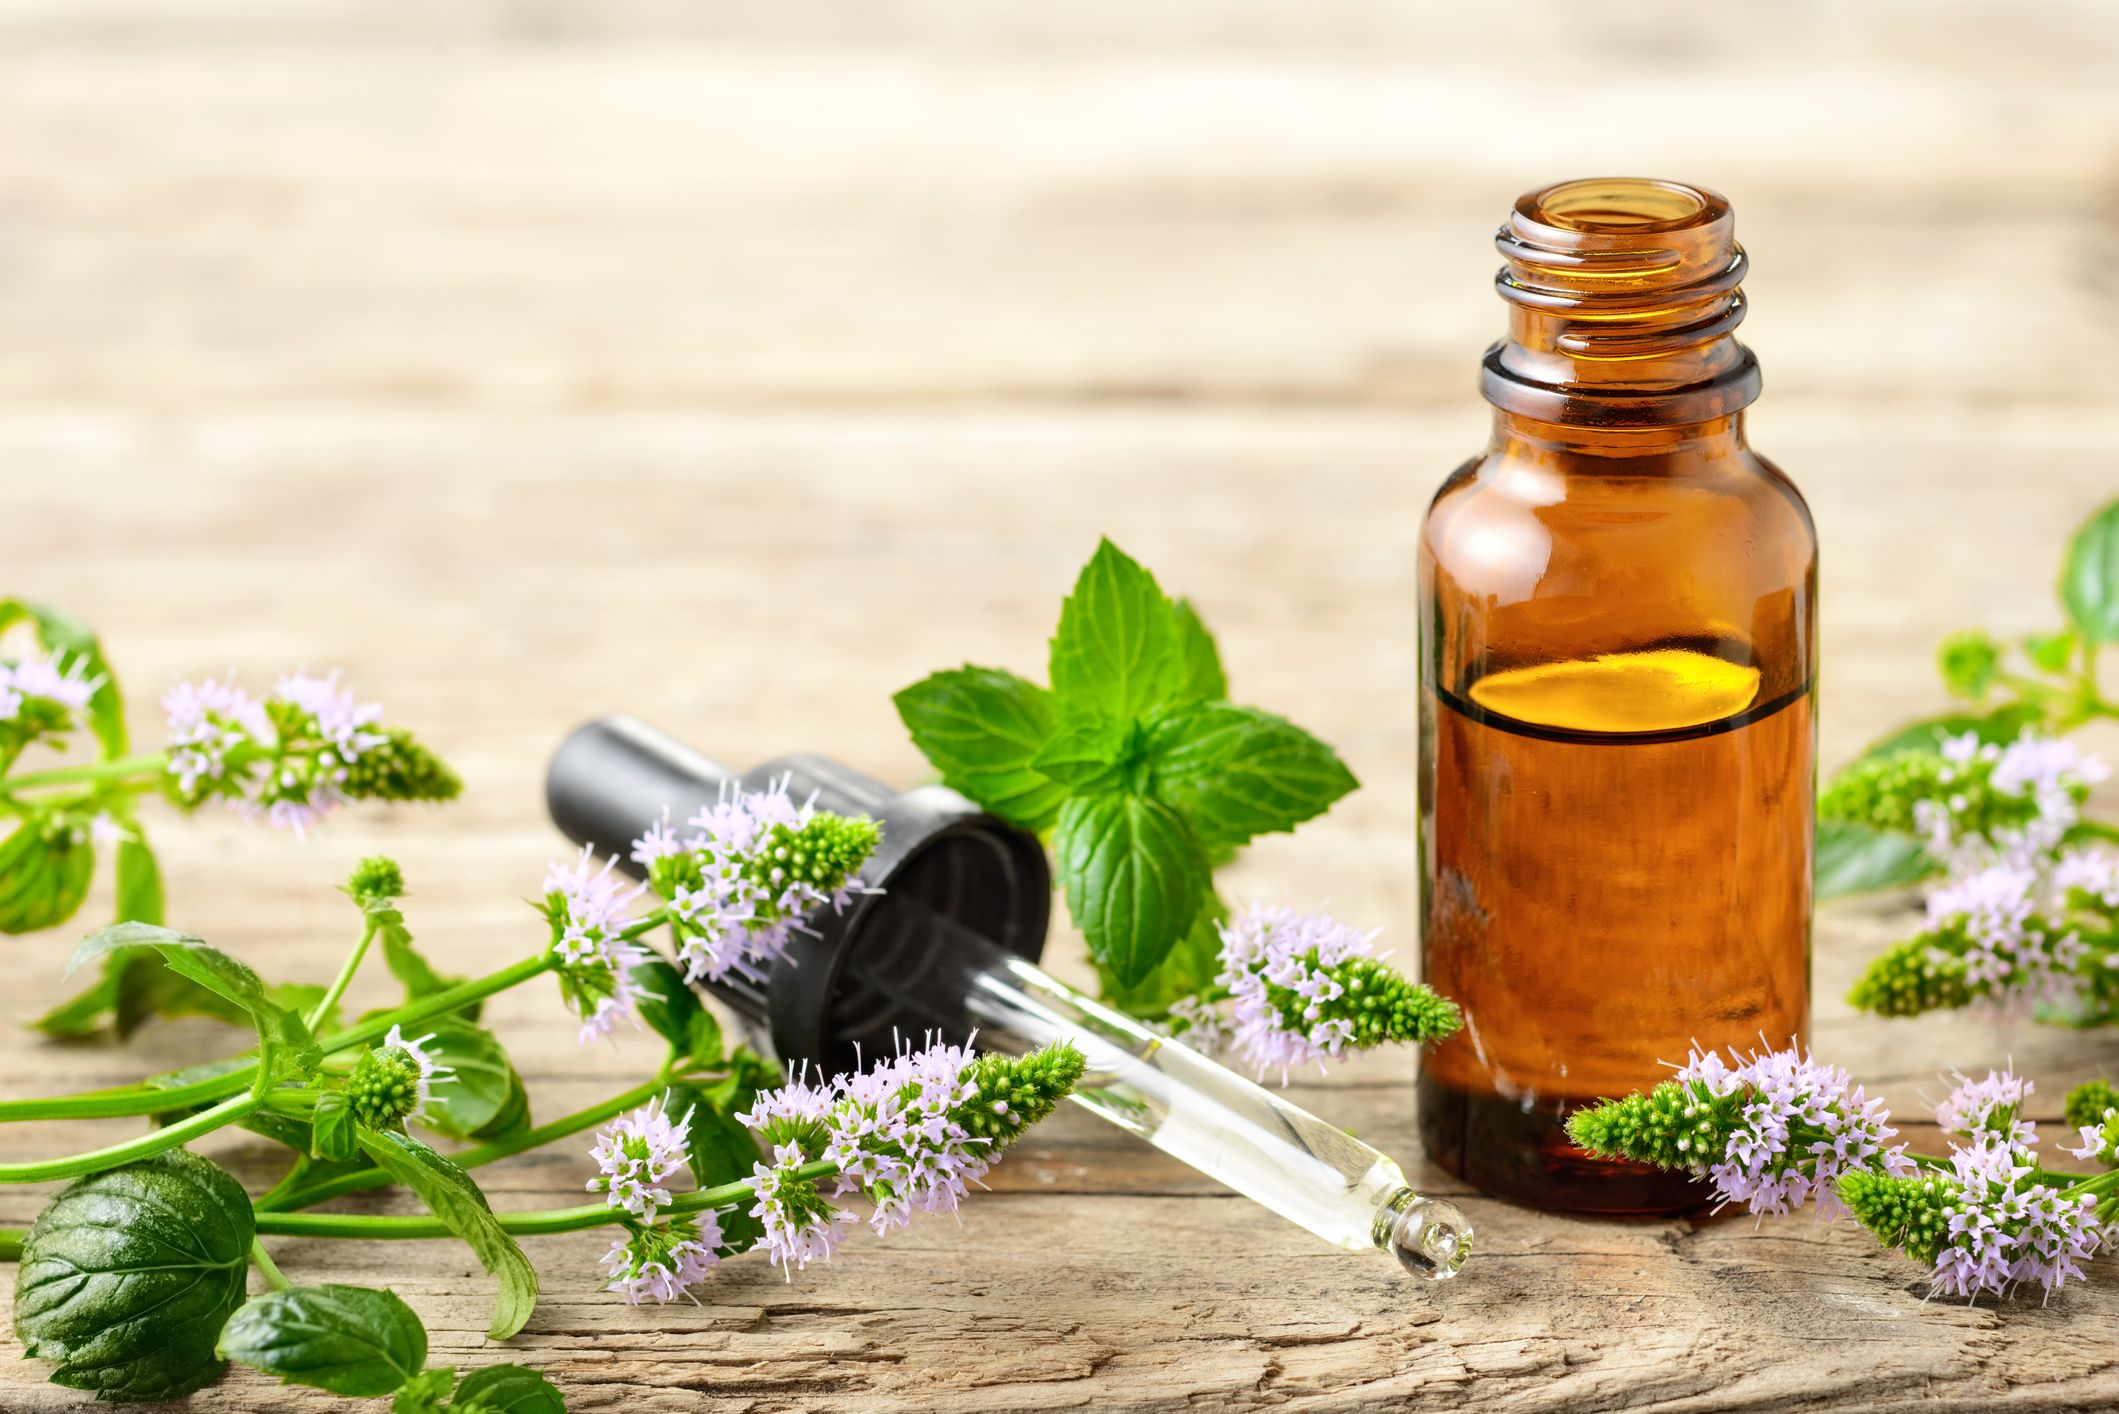 13 Best Essential Oils for Colds and Coughs